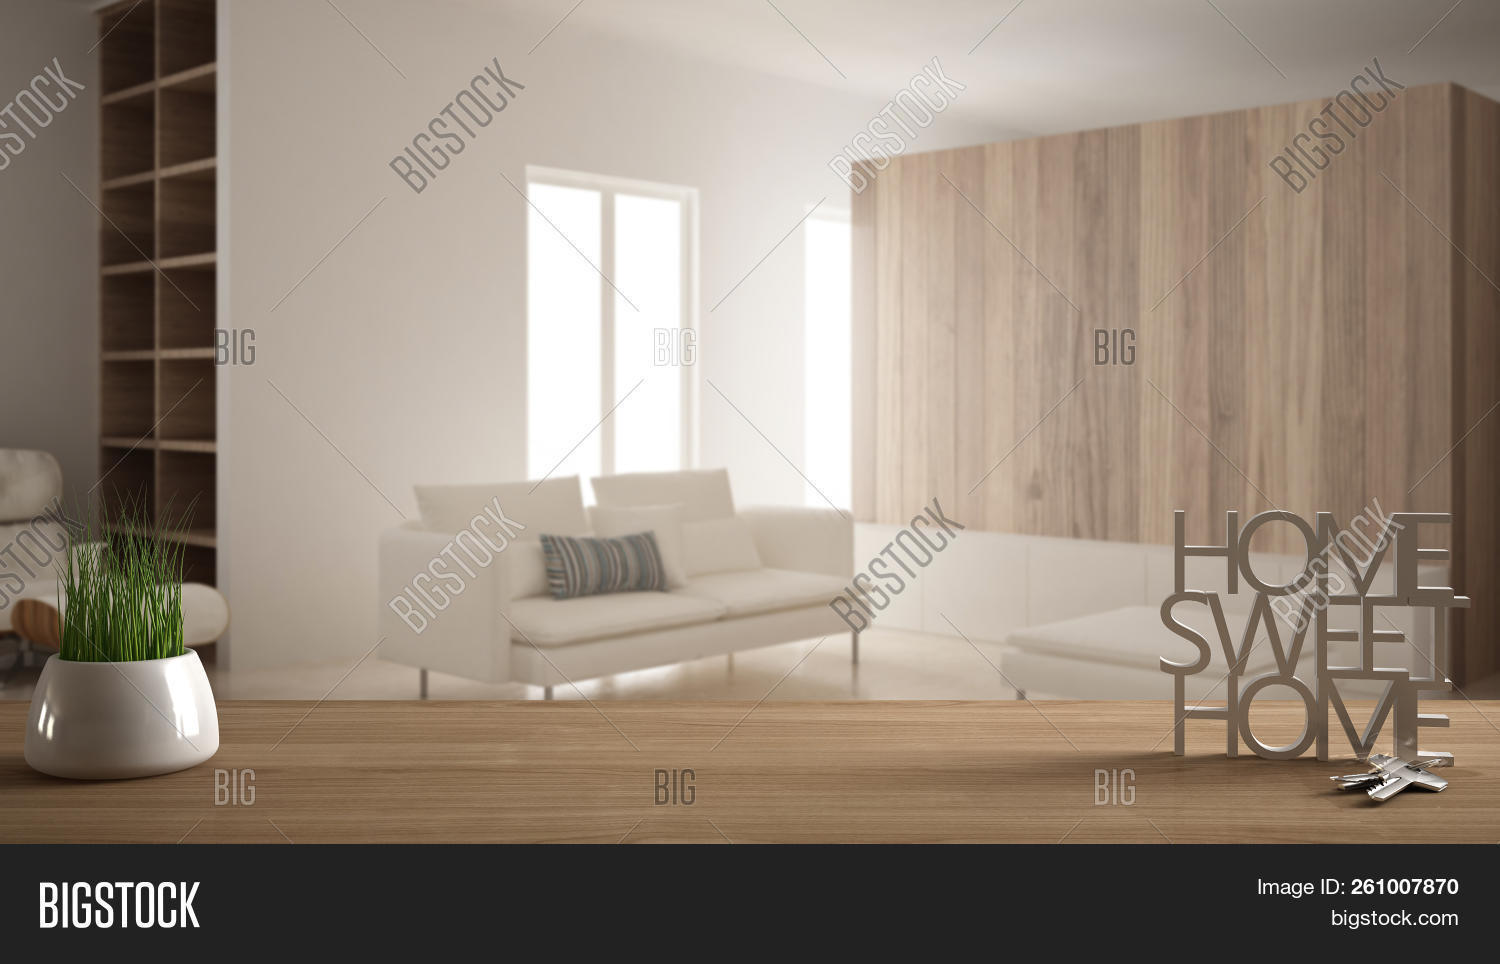 Wooden Table, Desk Or Shelf With Potted Grass Plant, House Keys And 3d Letters Home Sweet Home, Over